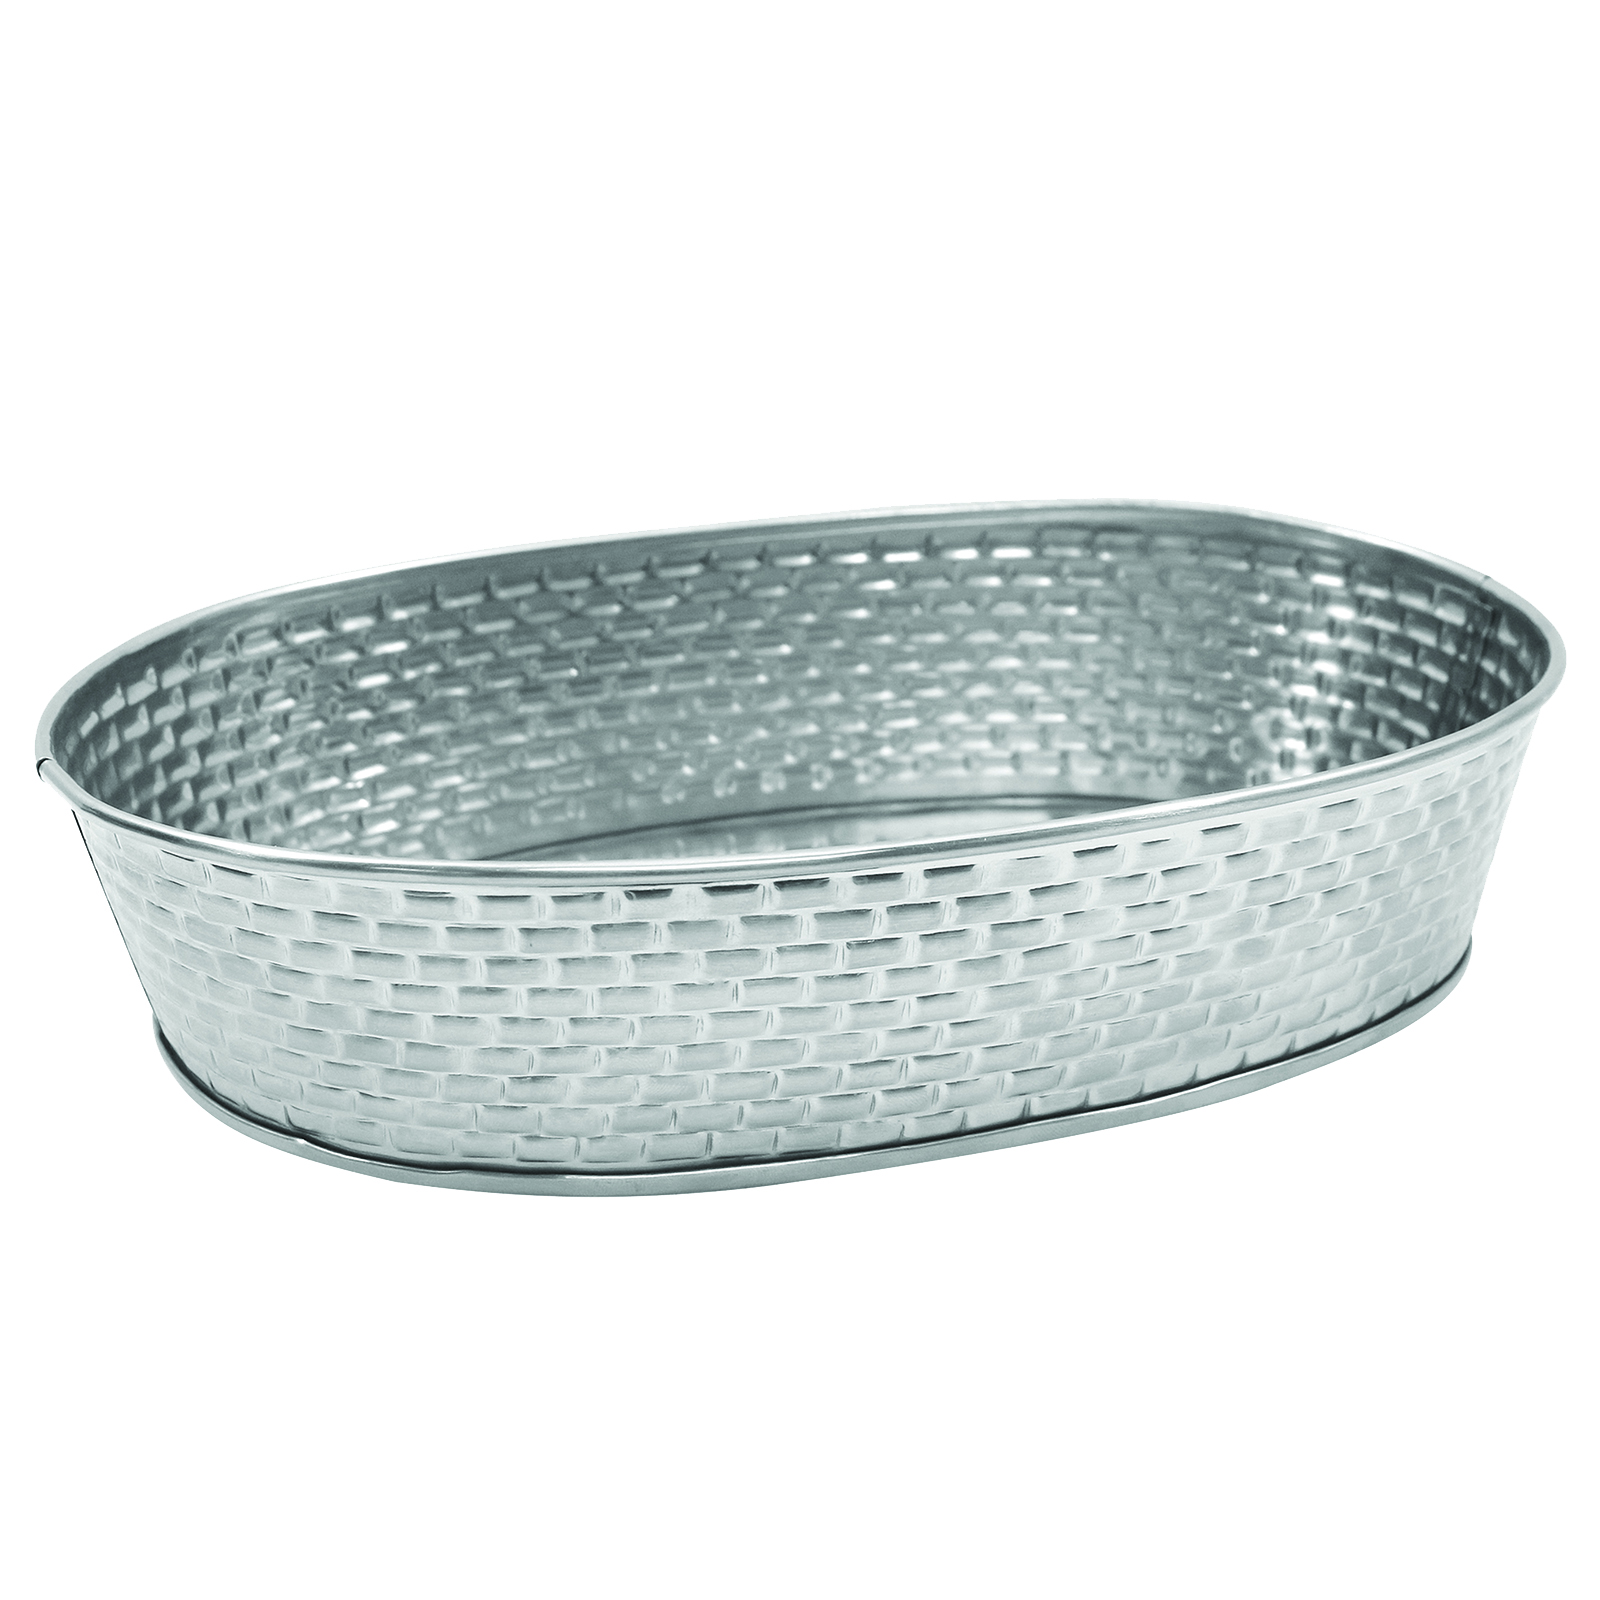 TableCraft Products GPSS96 platter, stainless steel